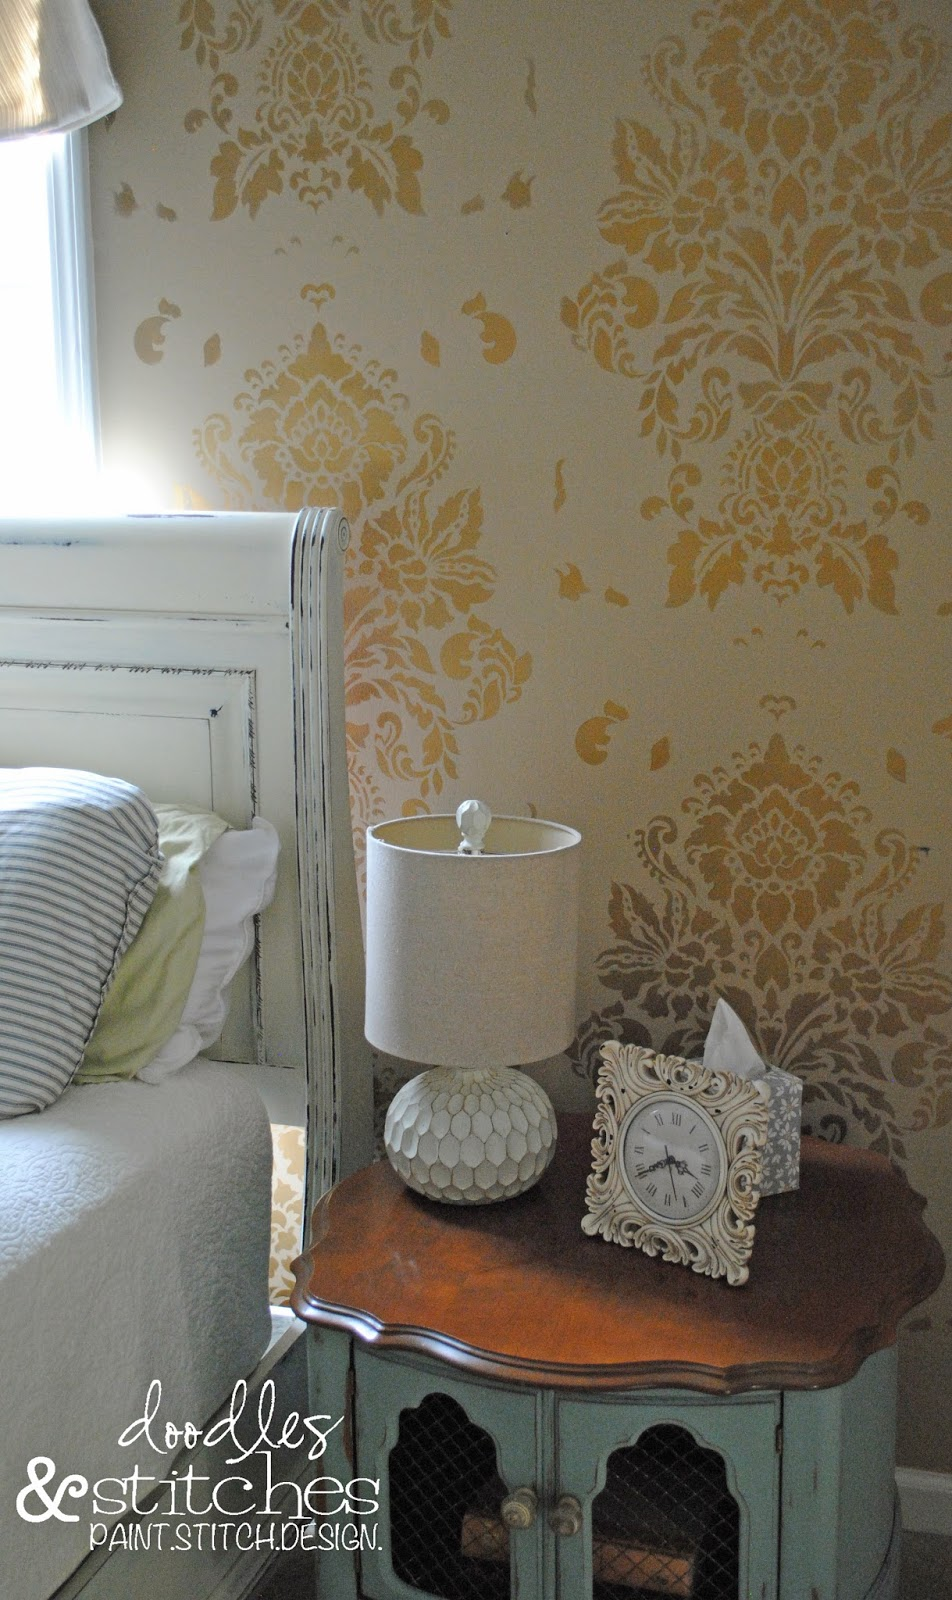 Doodles stitches rub n buff gold stencil it is a cute room but makes wall decor difficult i wanted to do something to accent the room the walls were already painted this neutral taupe ish color amipublicfo Choice Image